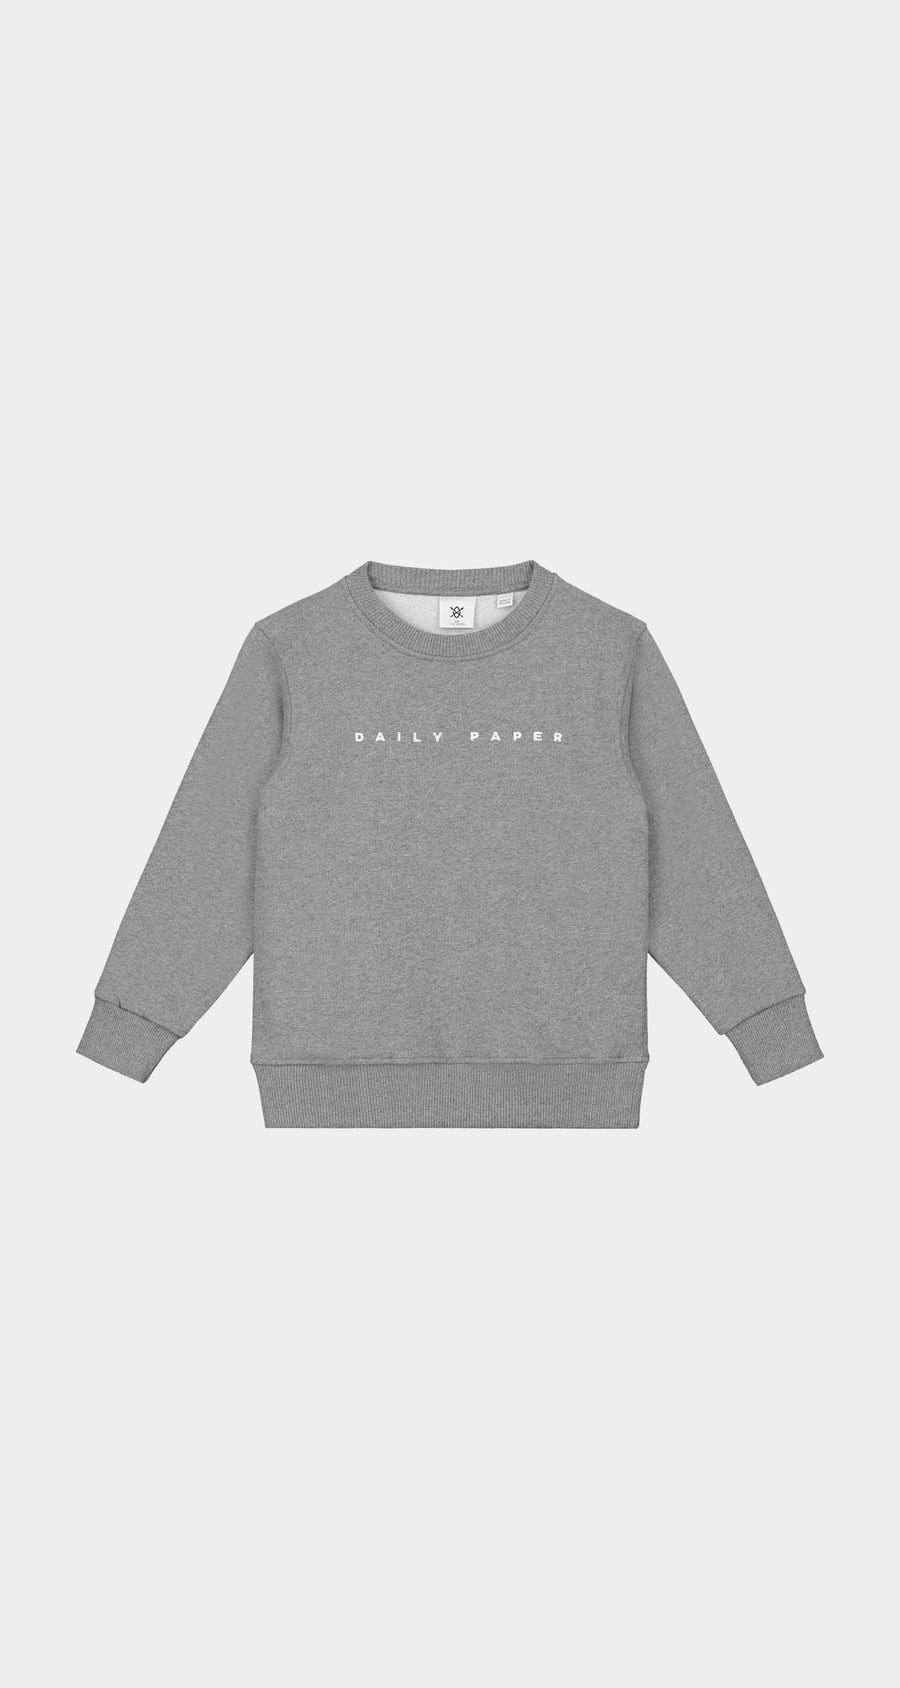 Daily Paper - Grey Kids Alias Sweater NEW - Front